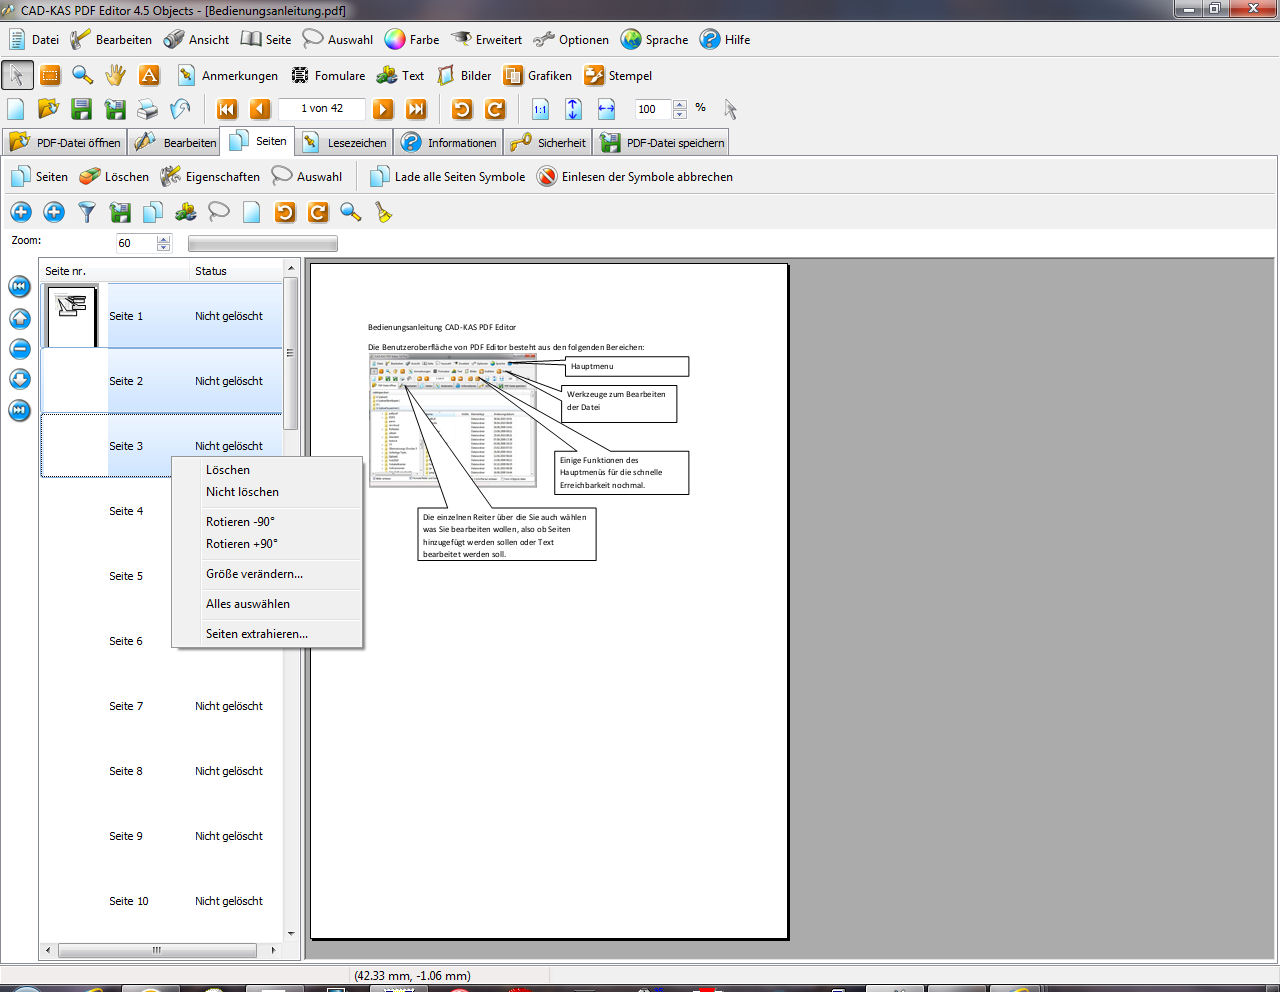 Download 2 5 cad editor kas pdf free hiremanager for Online cad editor